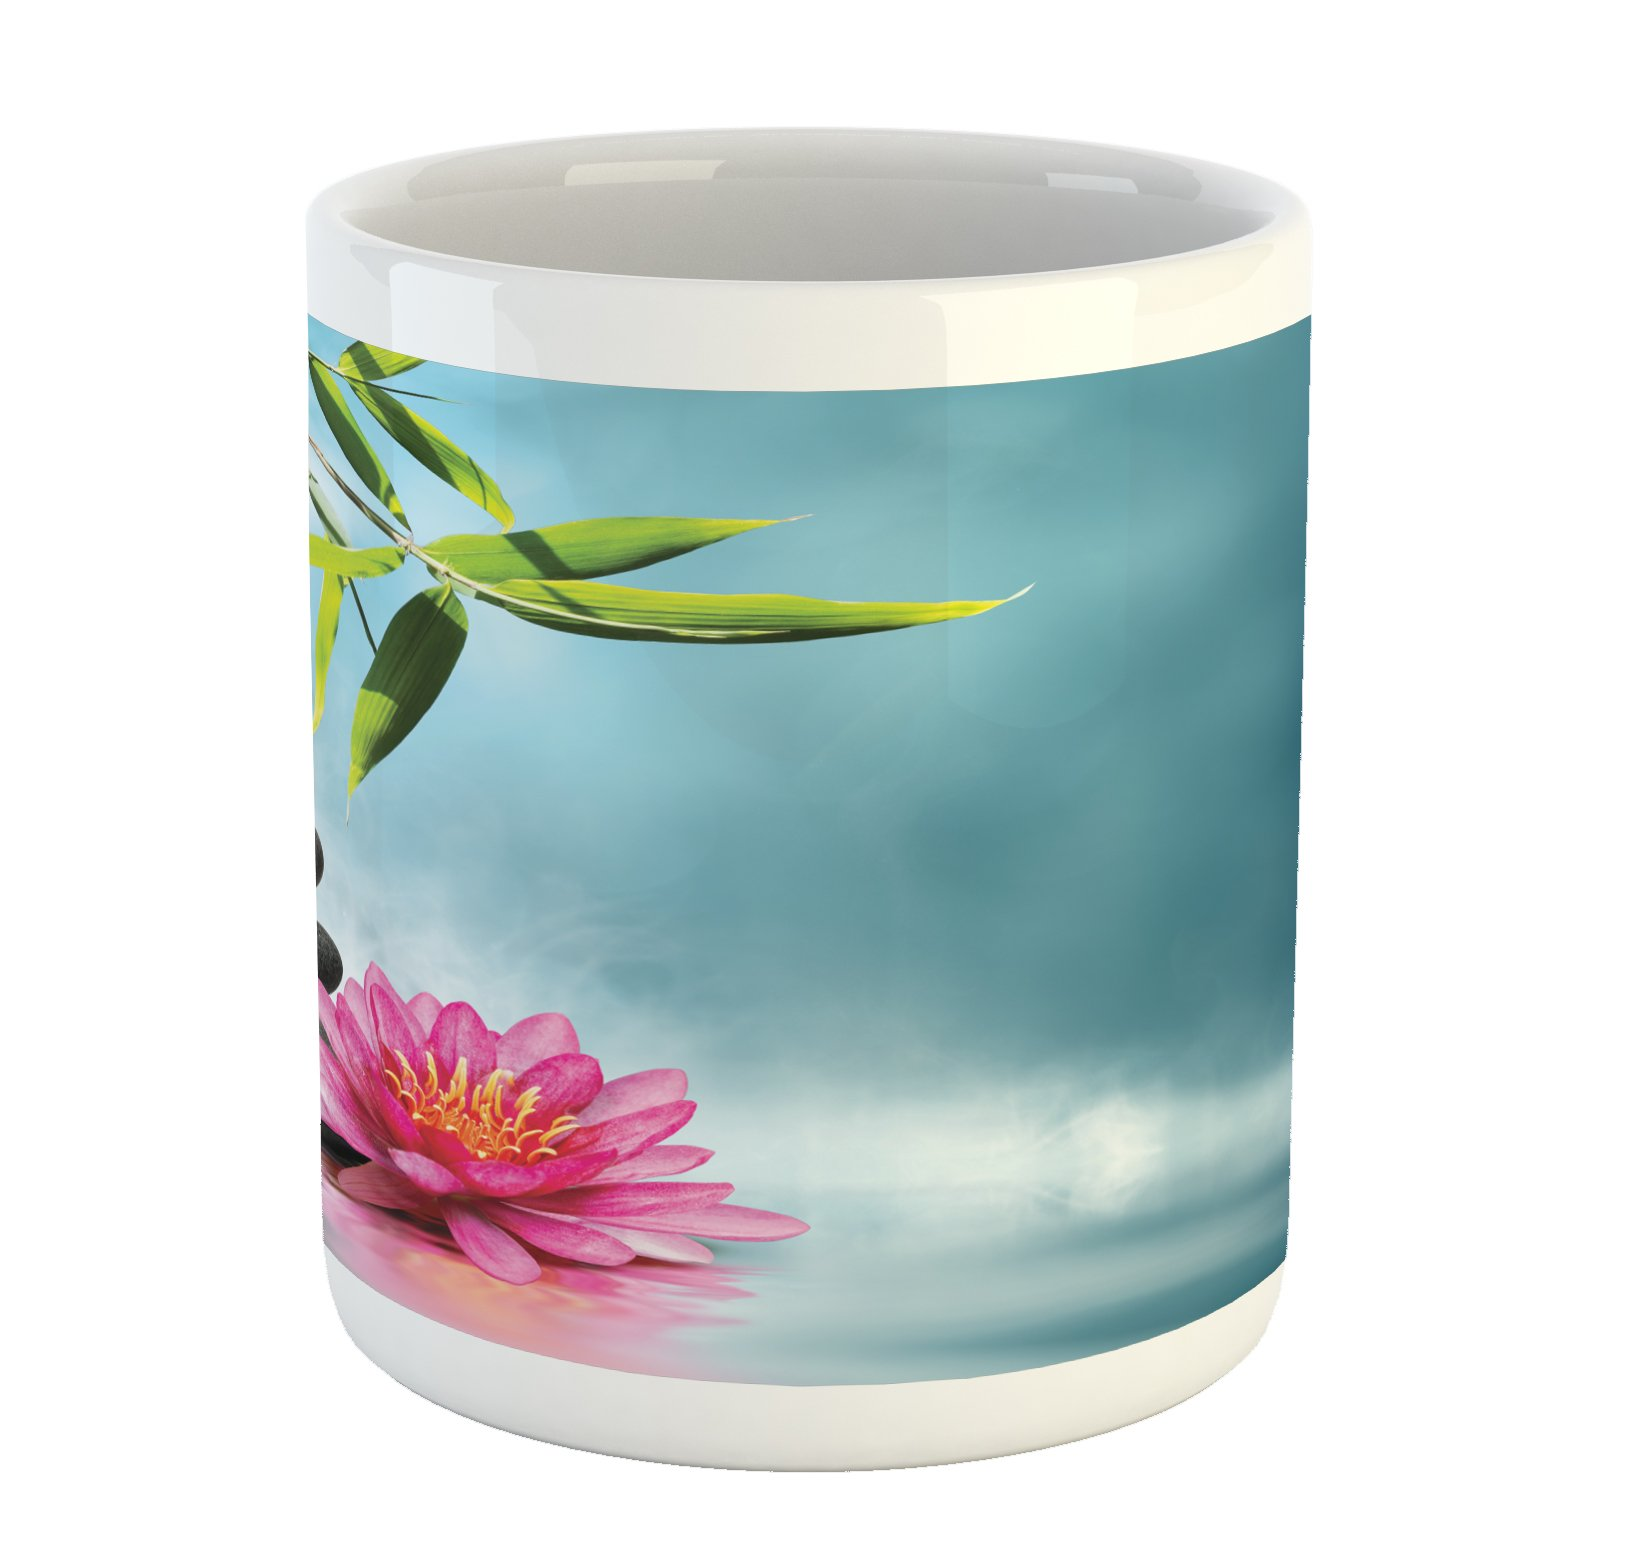 Ambesonne Spa Mug, Spa Theme with Lily Lotus Flower and Rocks Yoga Style Purifying Your Soul Theme, Printed Ceramic Coffee Mug Water Tea Drinks Cup, Blue Pink Green